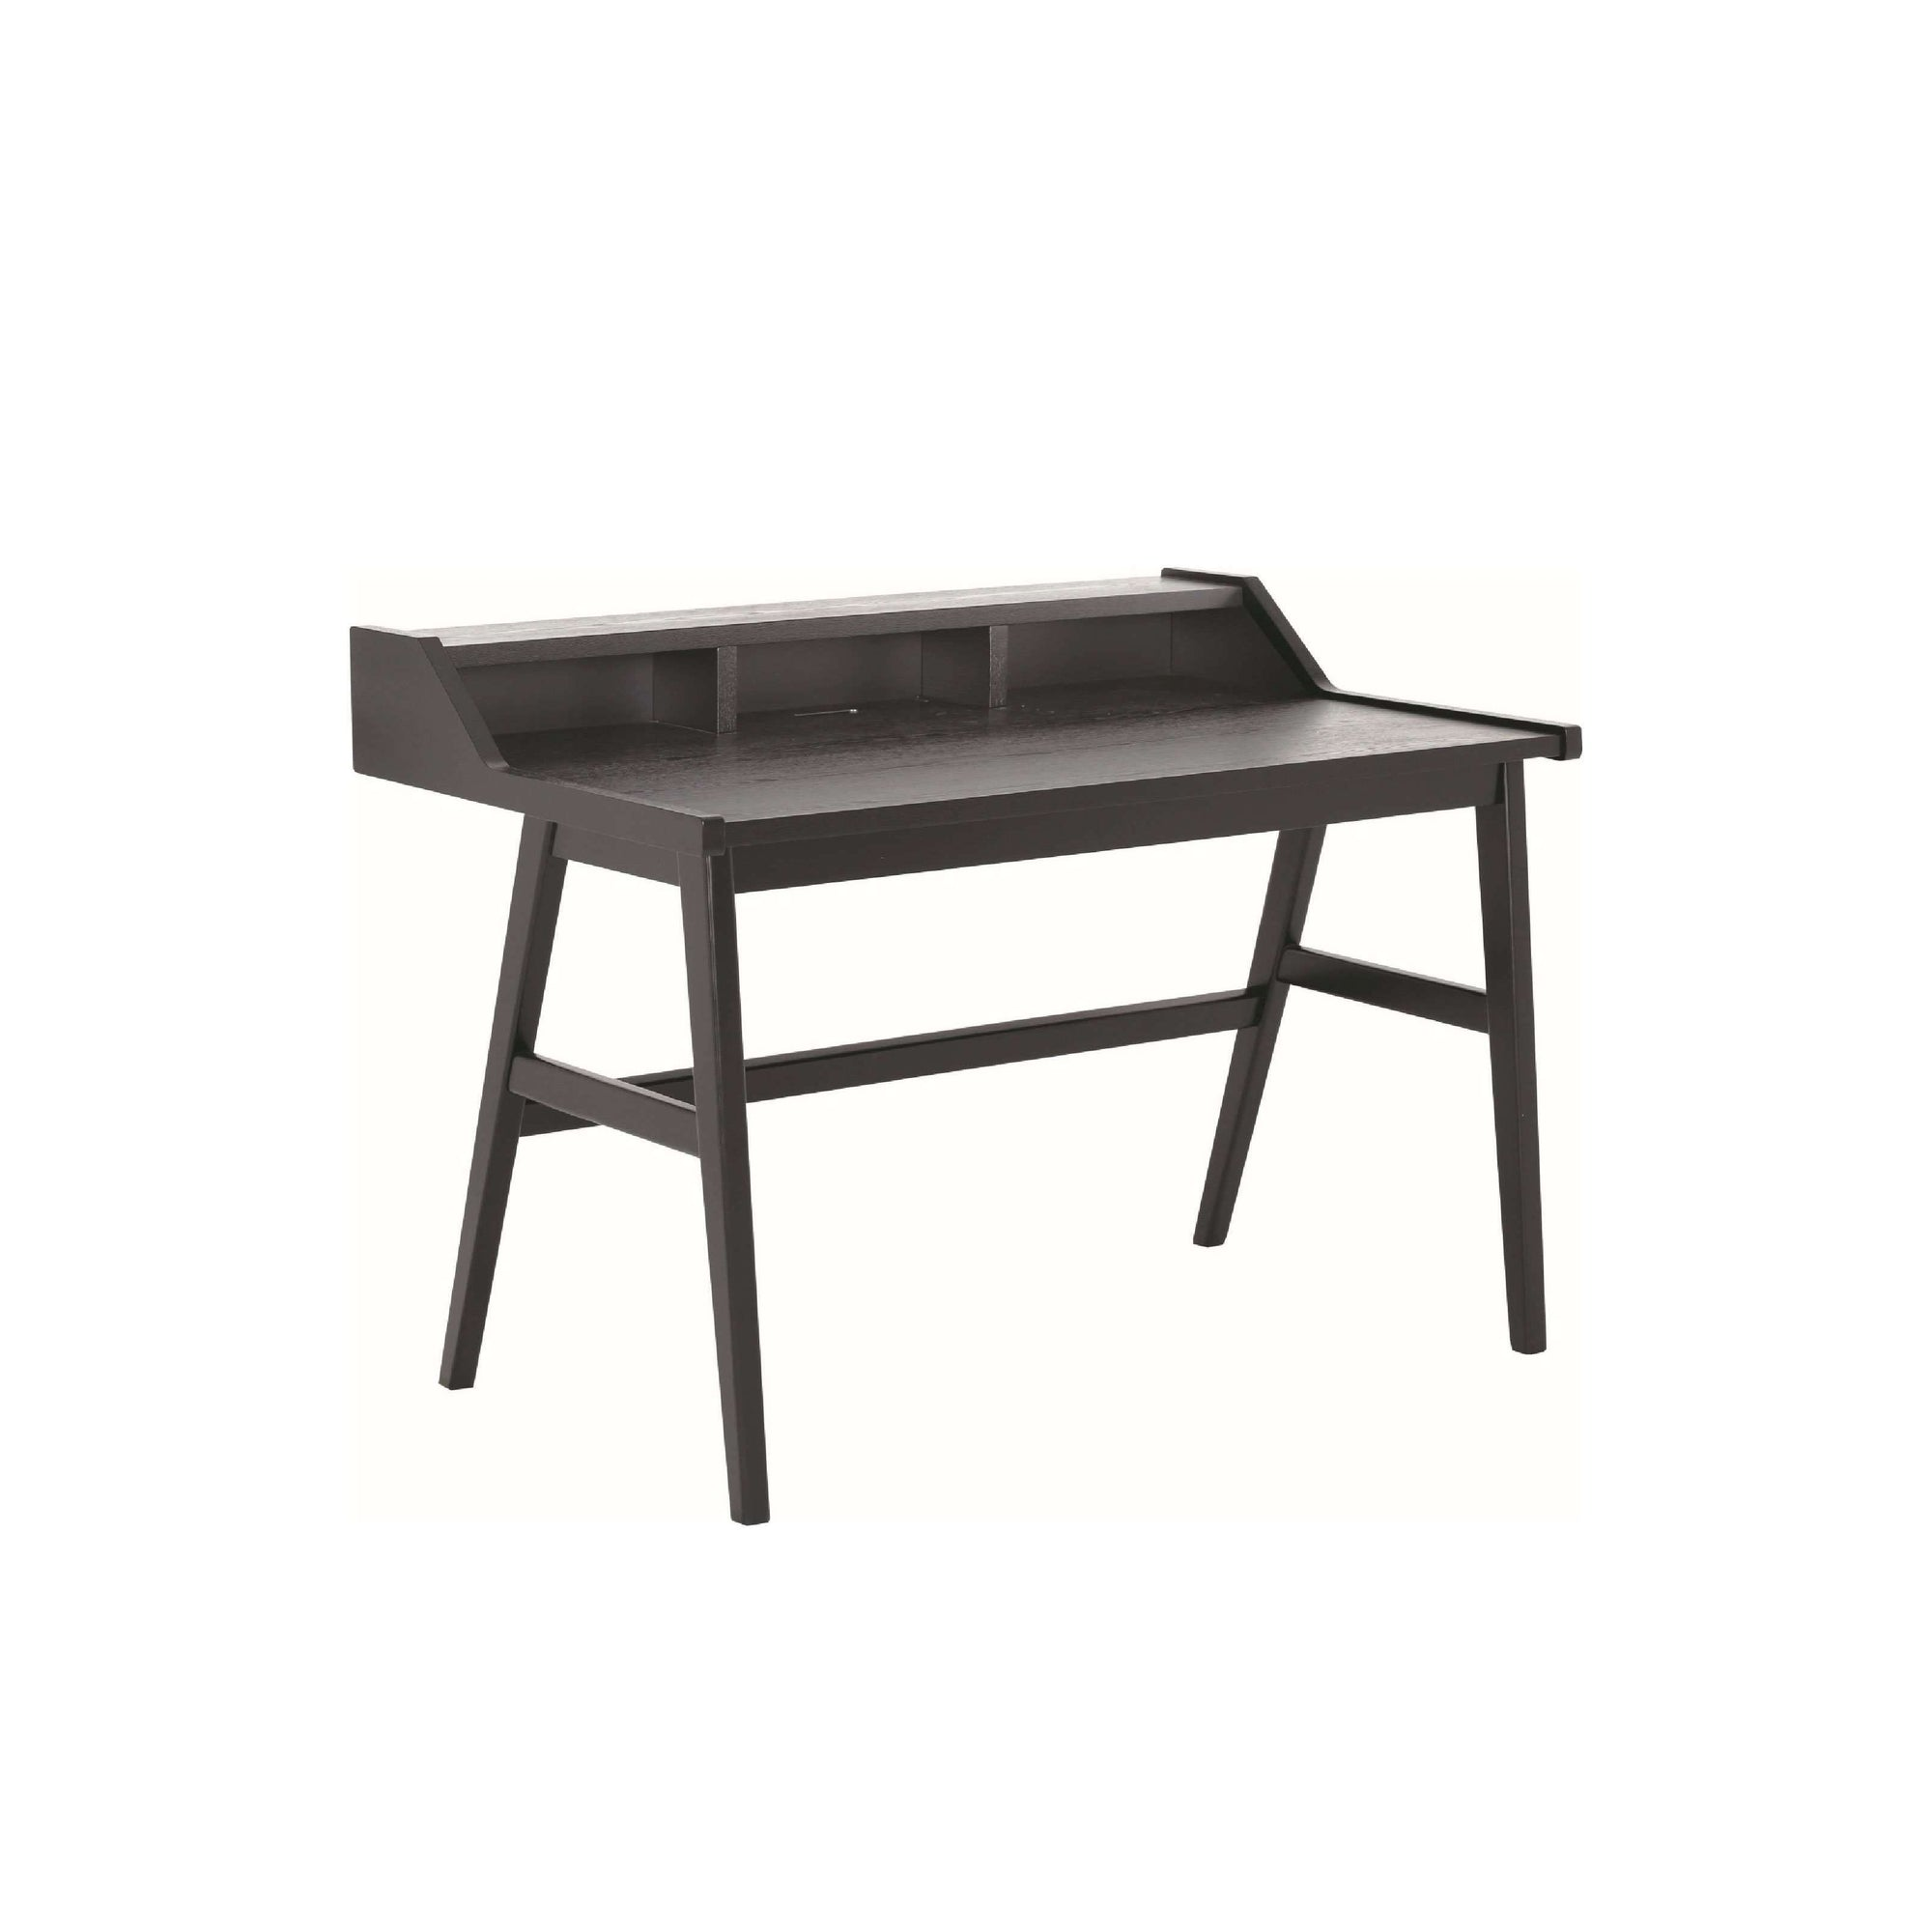 KENNEDY Working Desk in Black colour